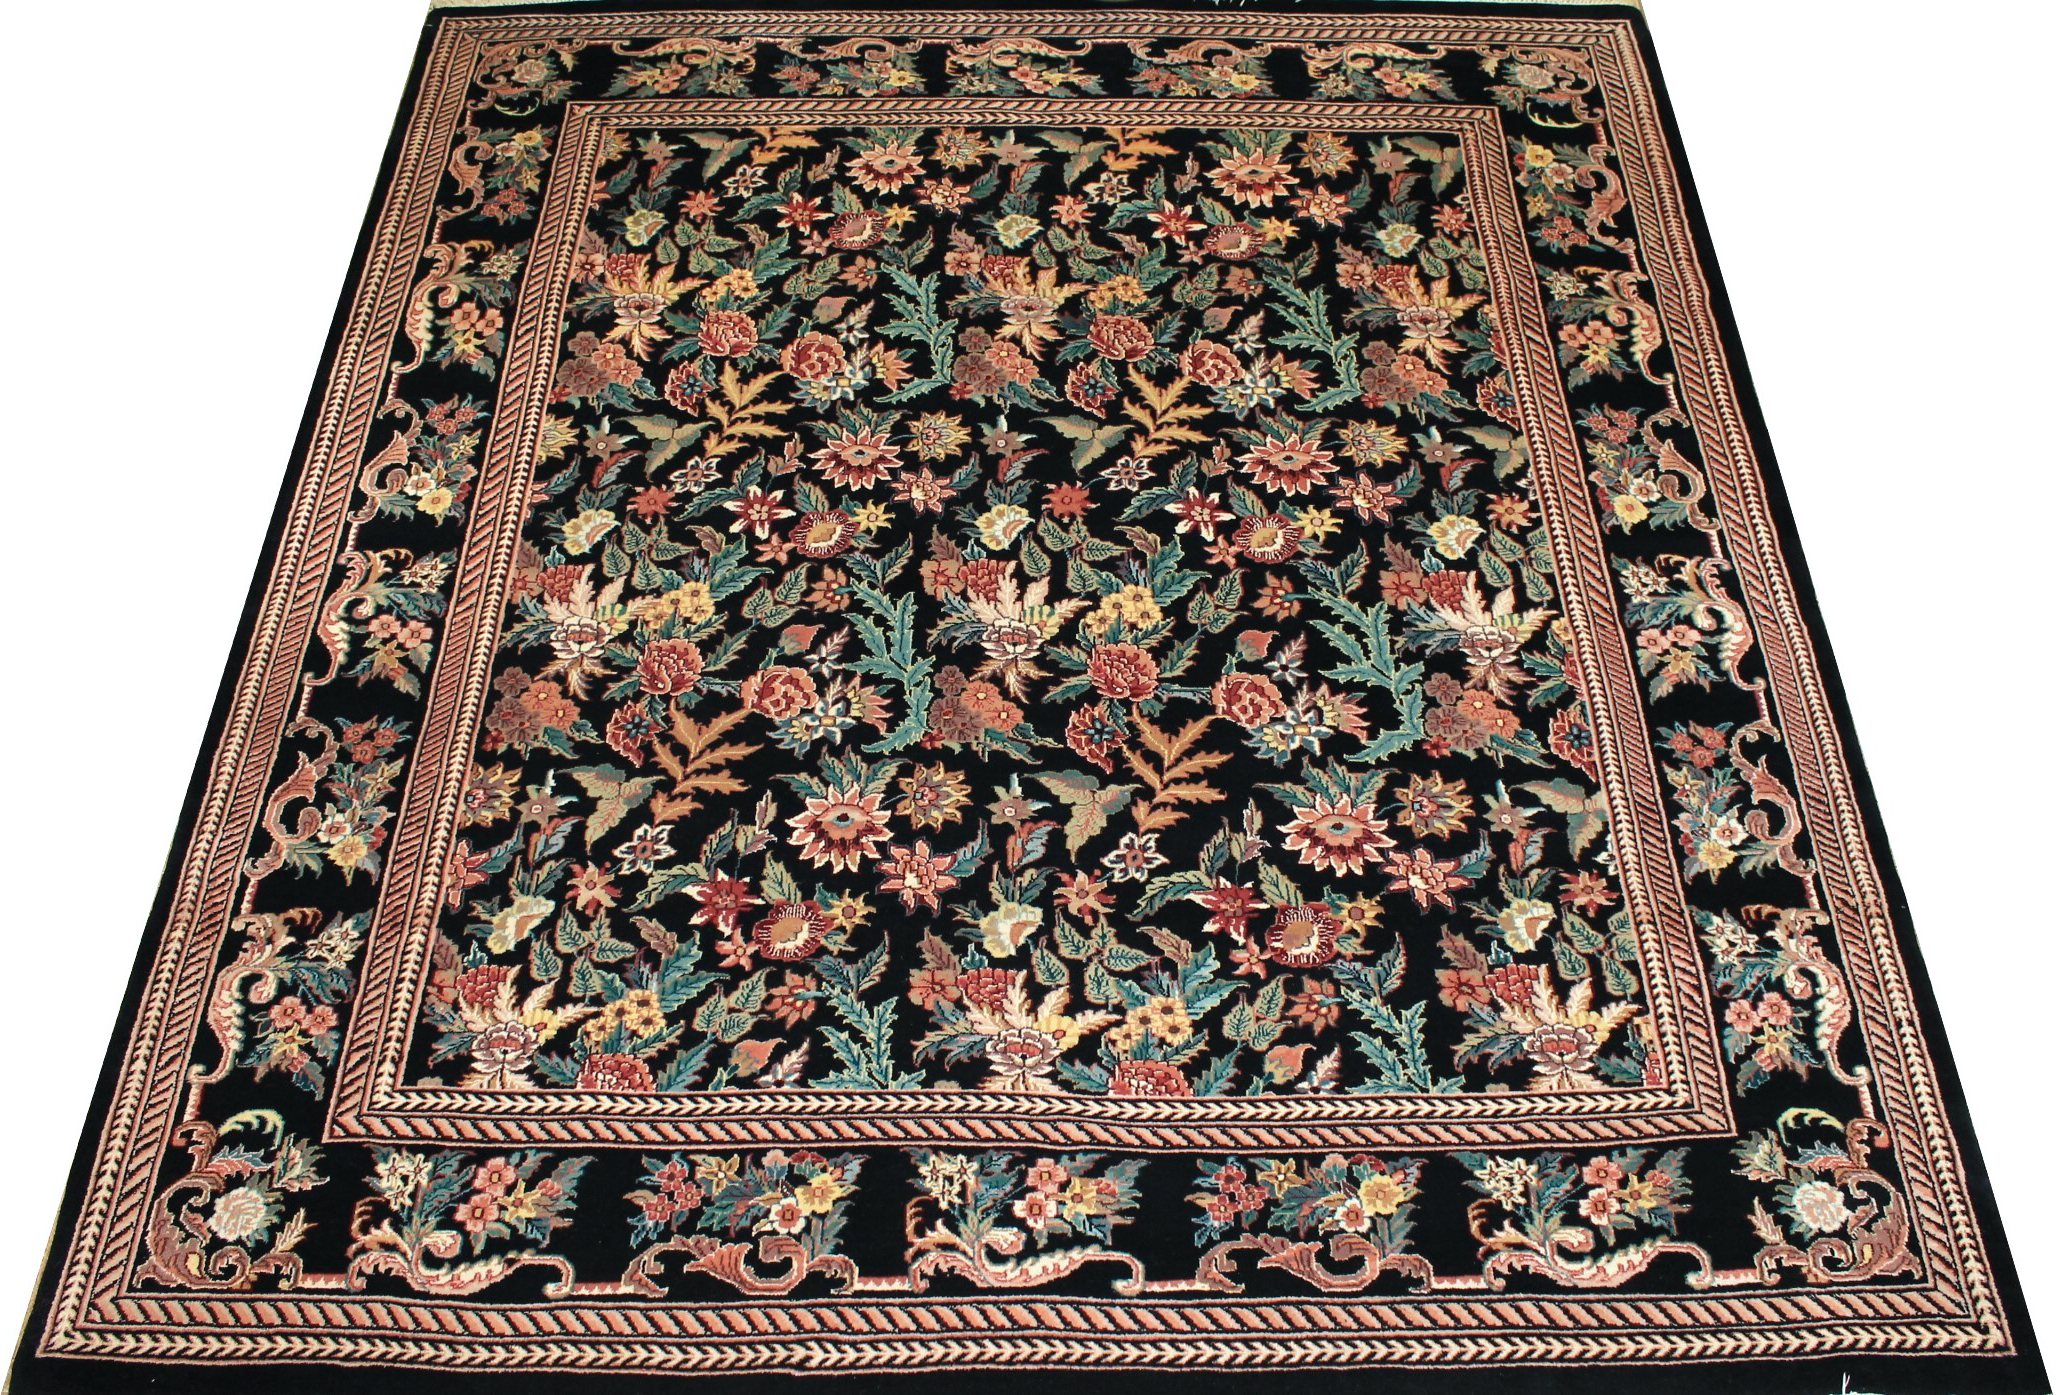 8x10 Traditional Hand Knotted Wool Area Rug - MR0753